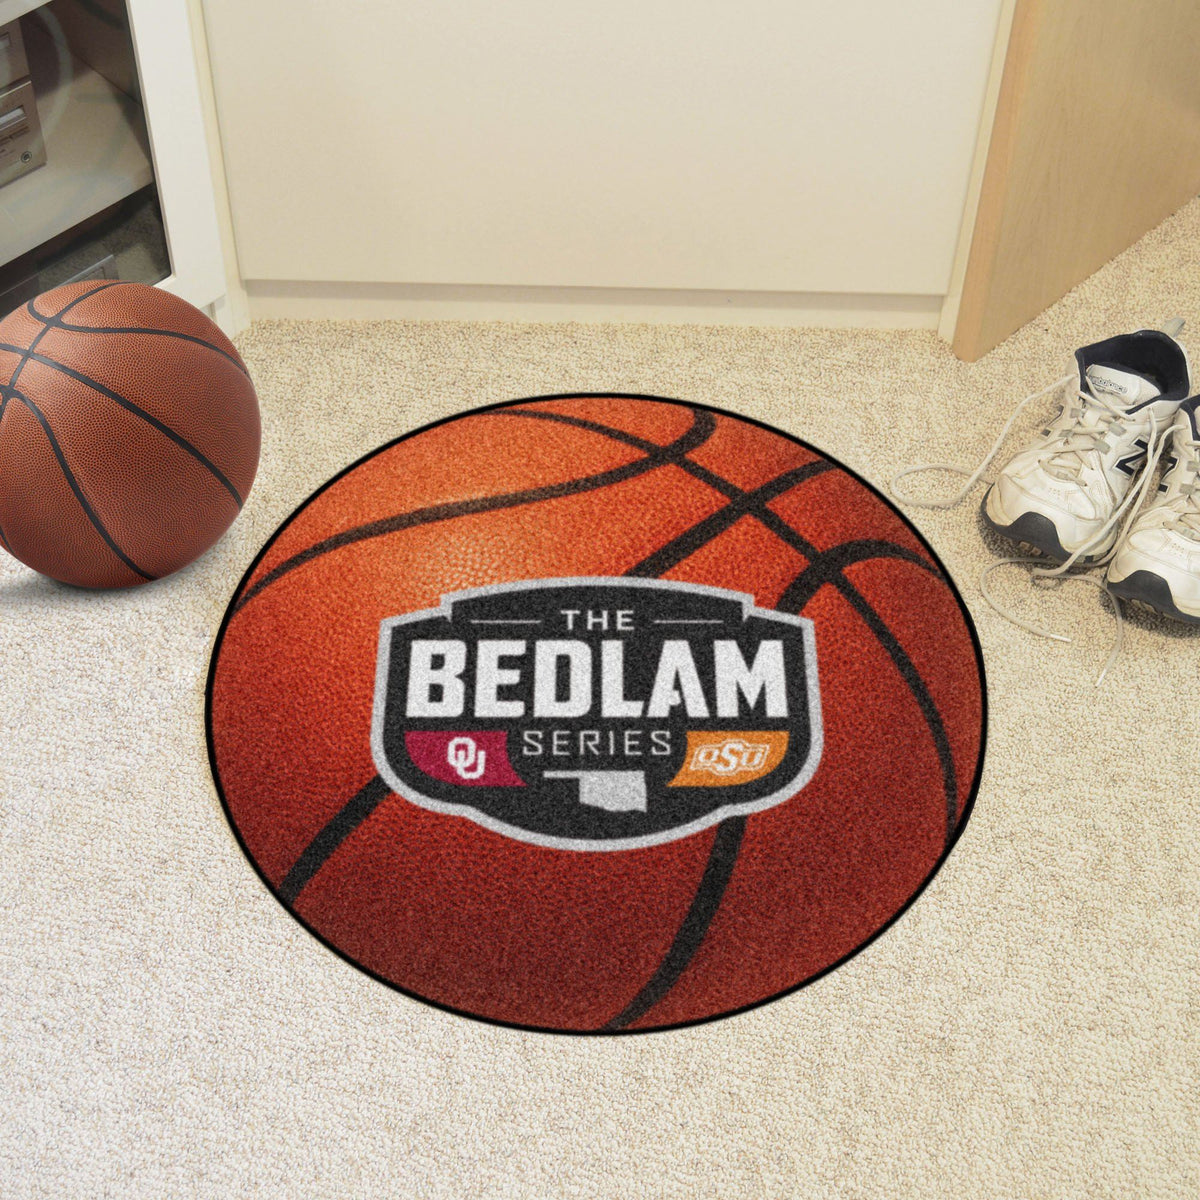 Collegiate - Basketball Mat: T - Z Collegiate Mats, Rectangular Mats, Basketball Mat, Collegiate, Home Fan Mats The Bedlam Series